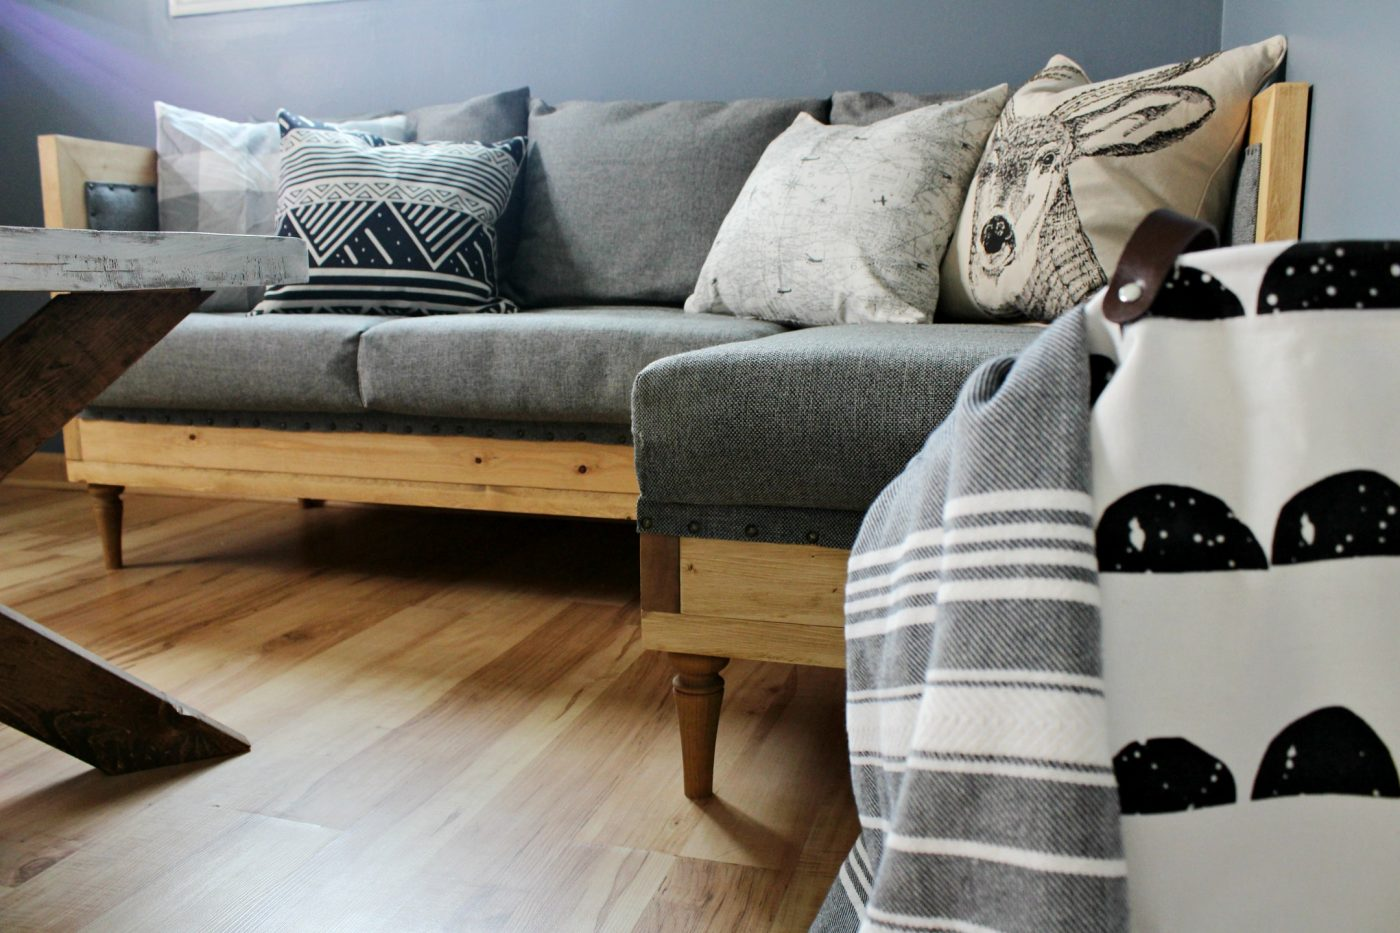 how to recover a sofa without sewing hotel lobby design build your own diy upholstered couch upholster wood frame free building plans